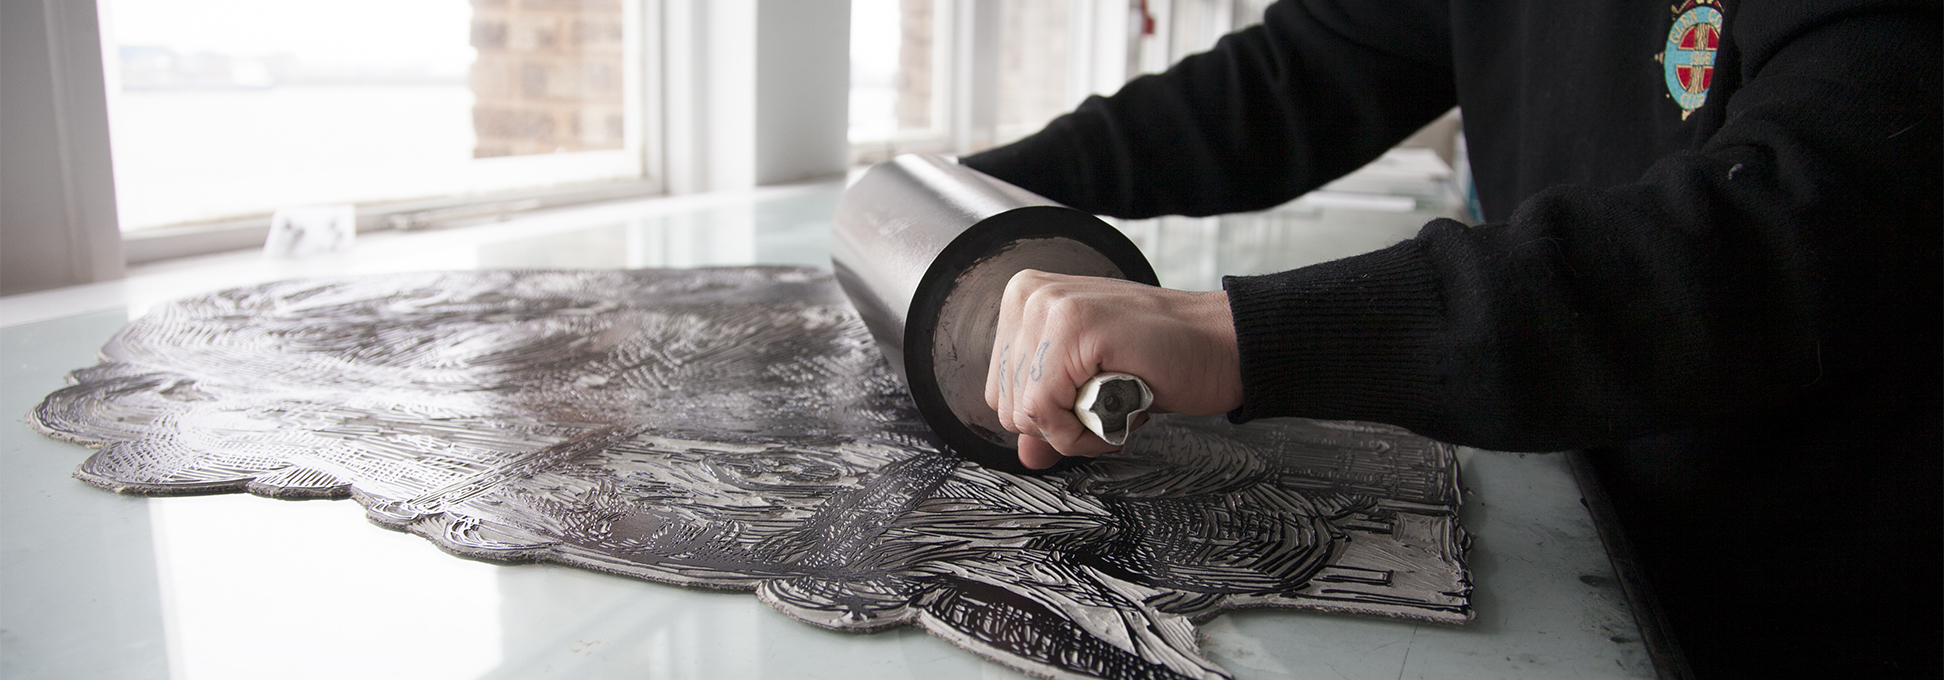 Lino Printing Nelly Duff